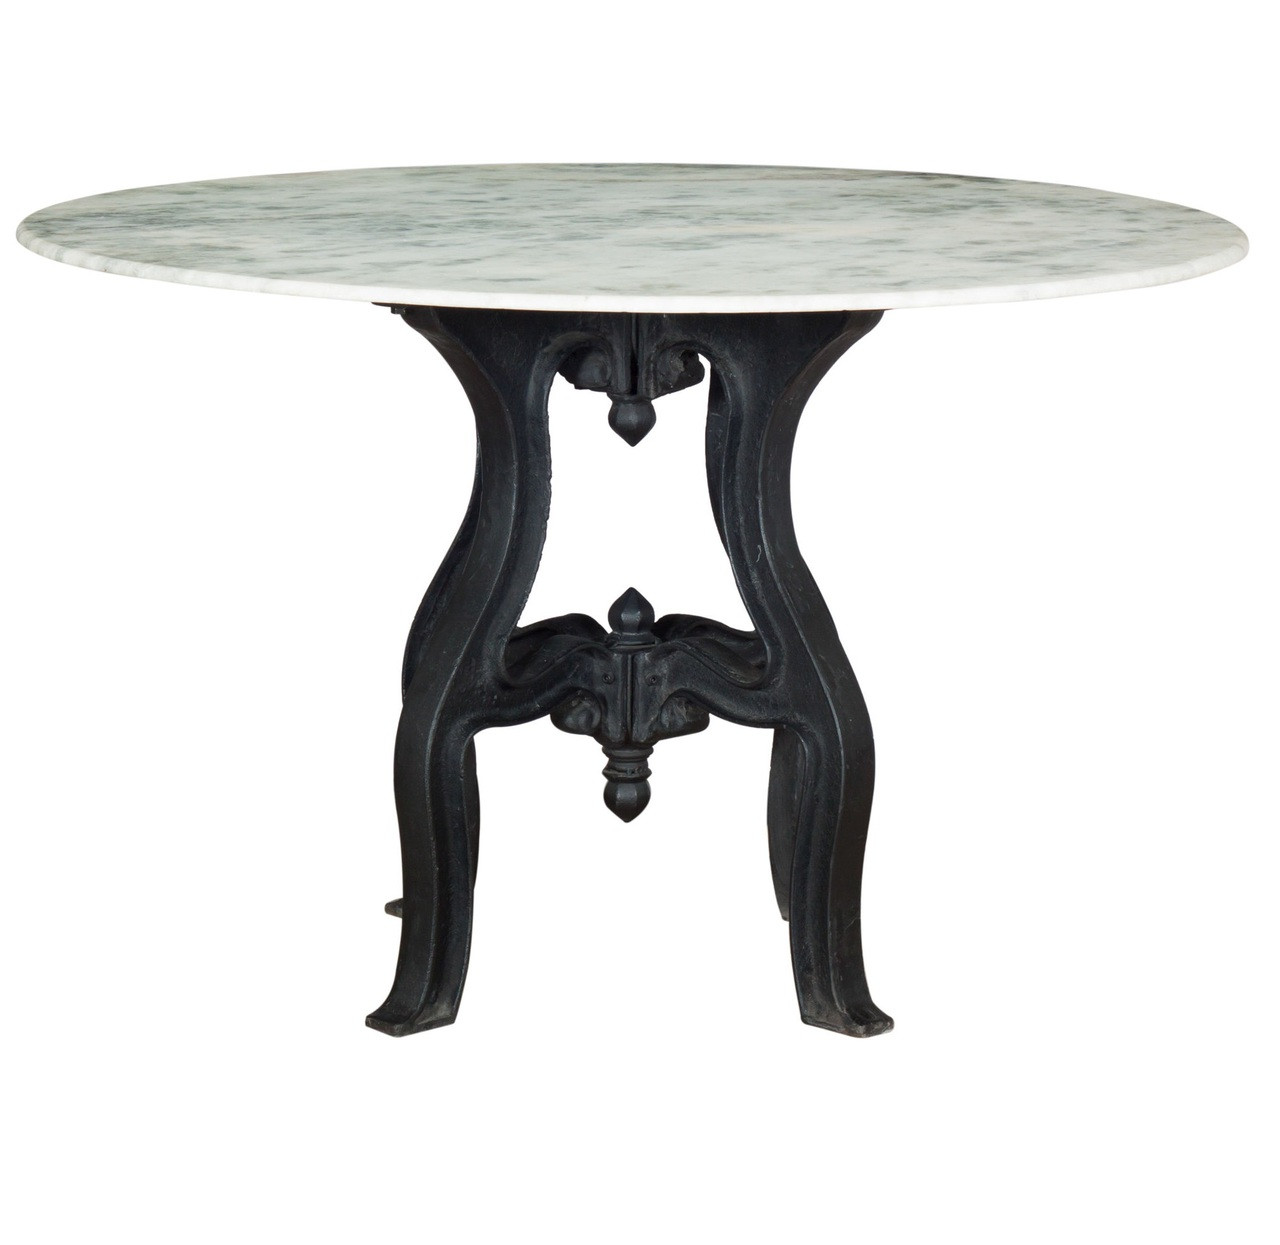 French Industrial White Marble Top Round Dining Table 48